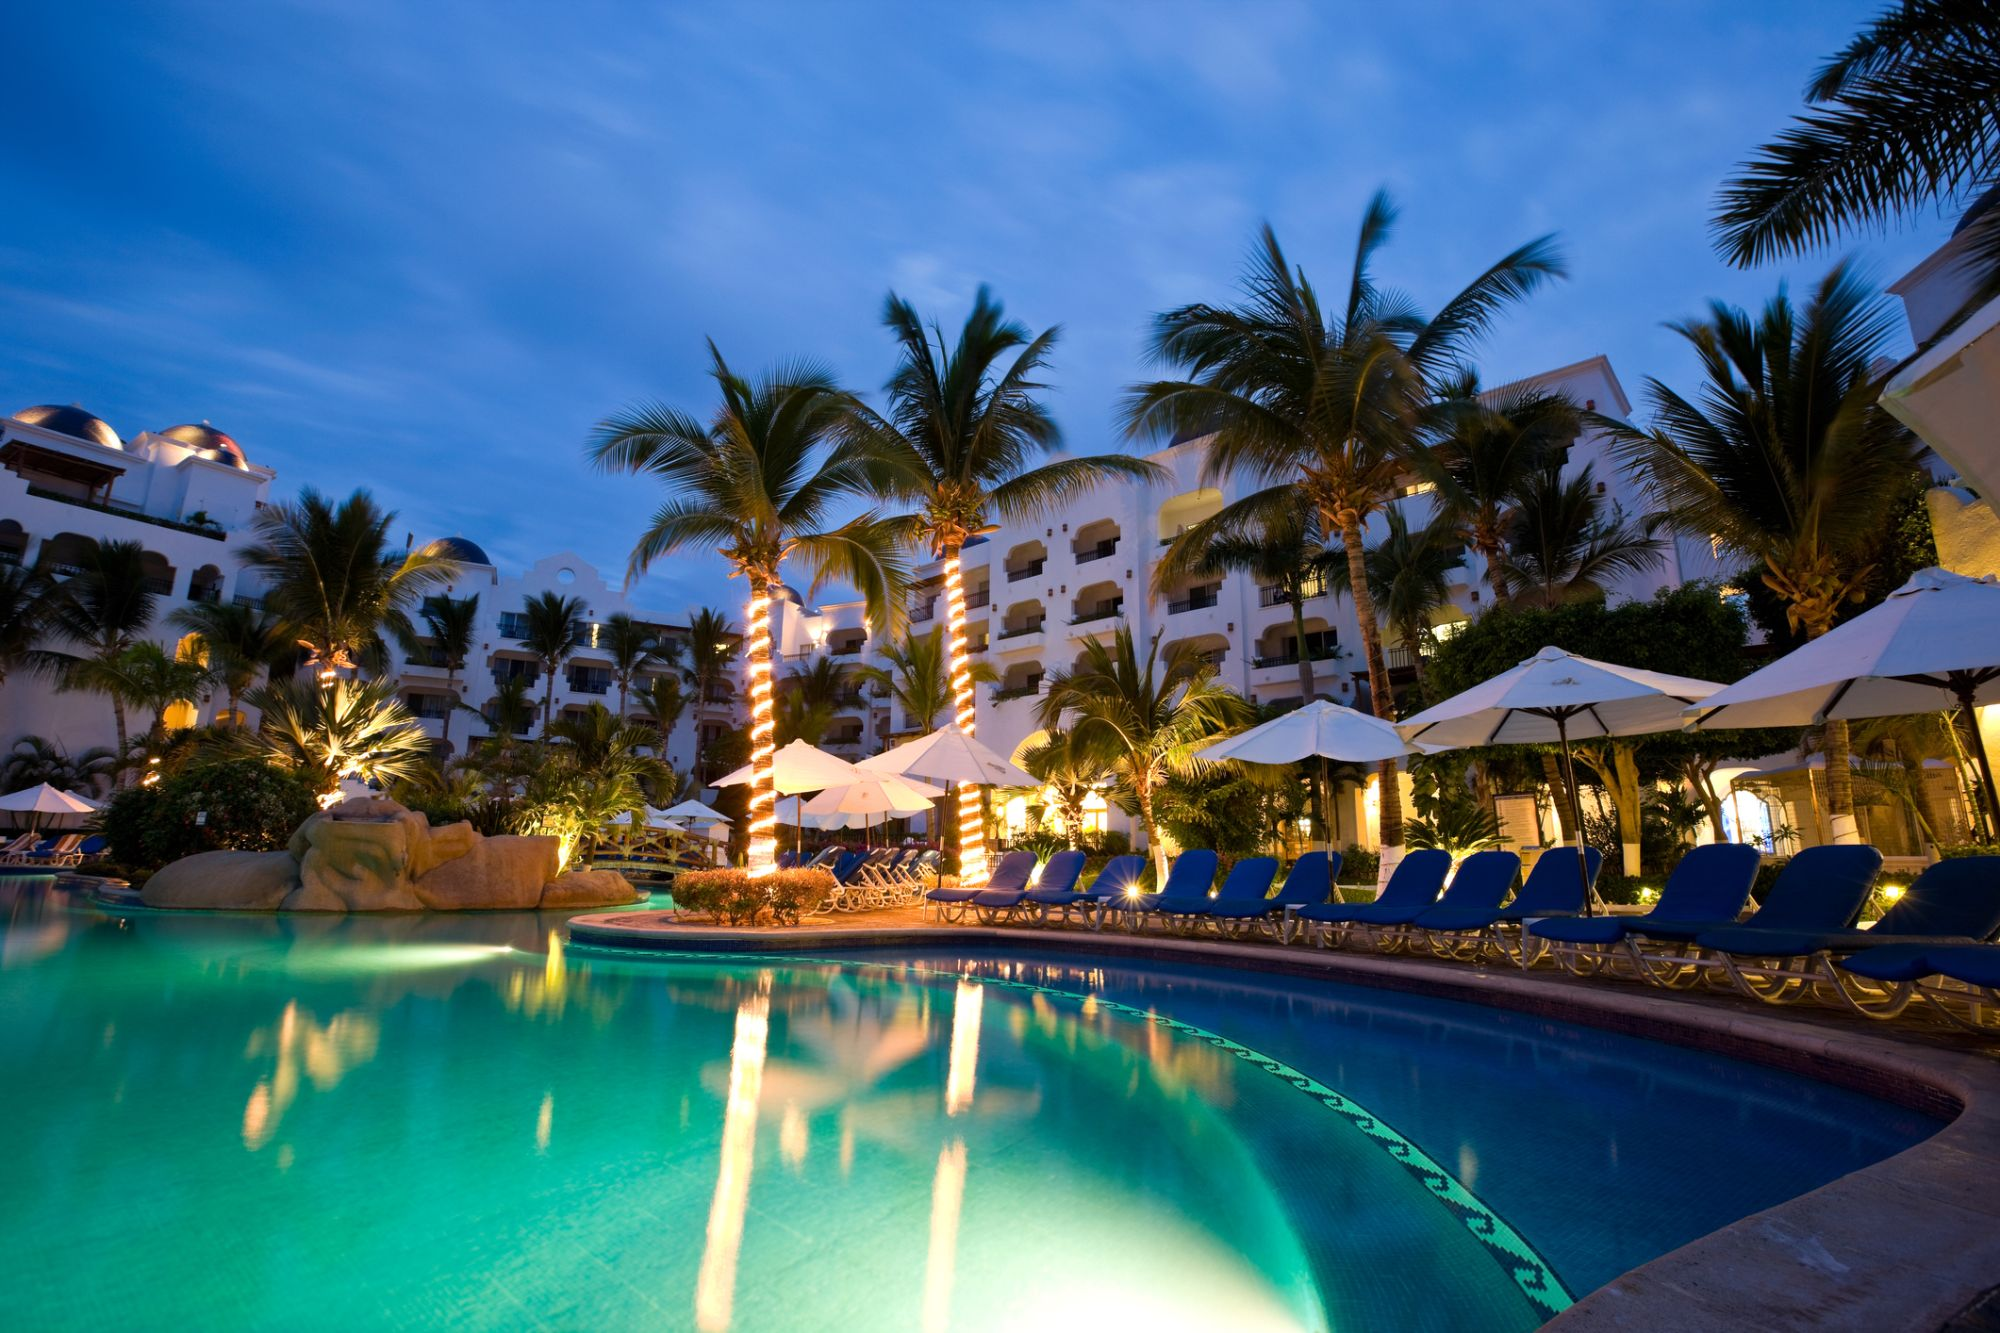 8 of the top luxury hotels in Los Cabos